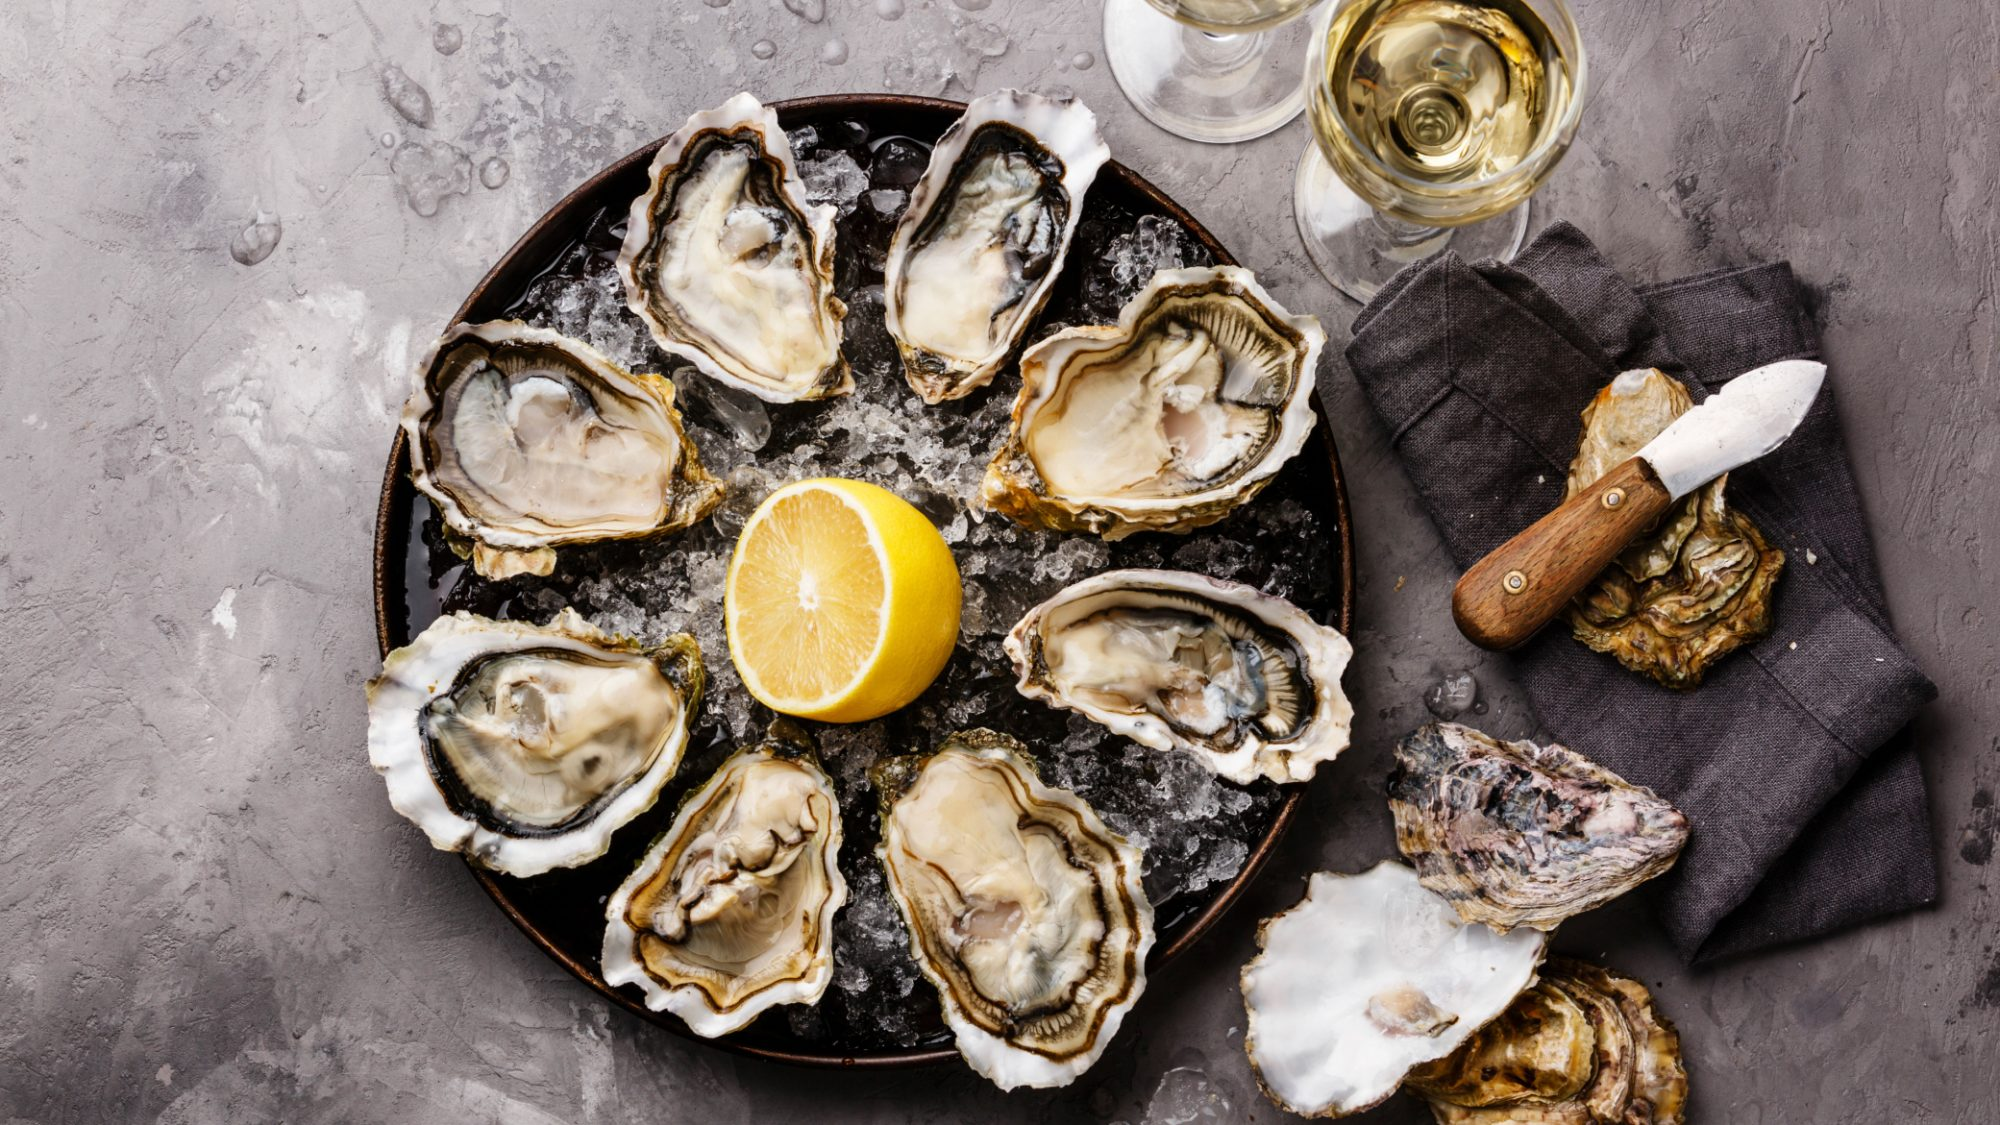 Thanks to Global Warming, Raw Oysters Could Get Riskier